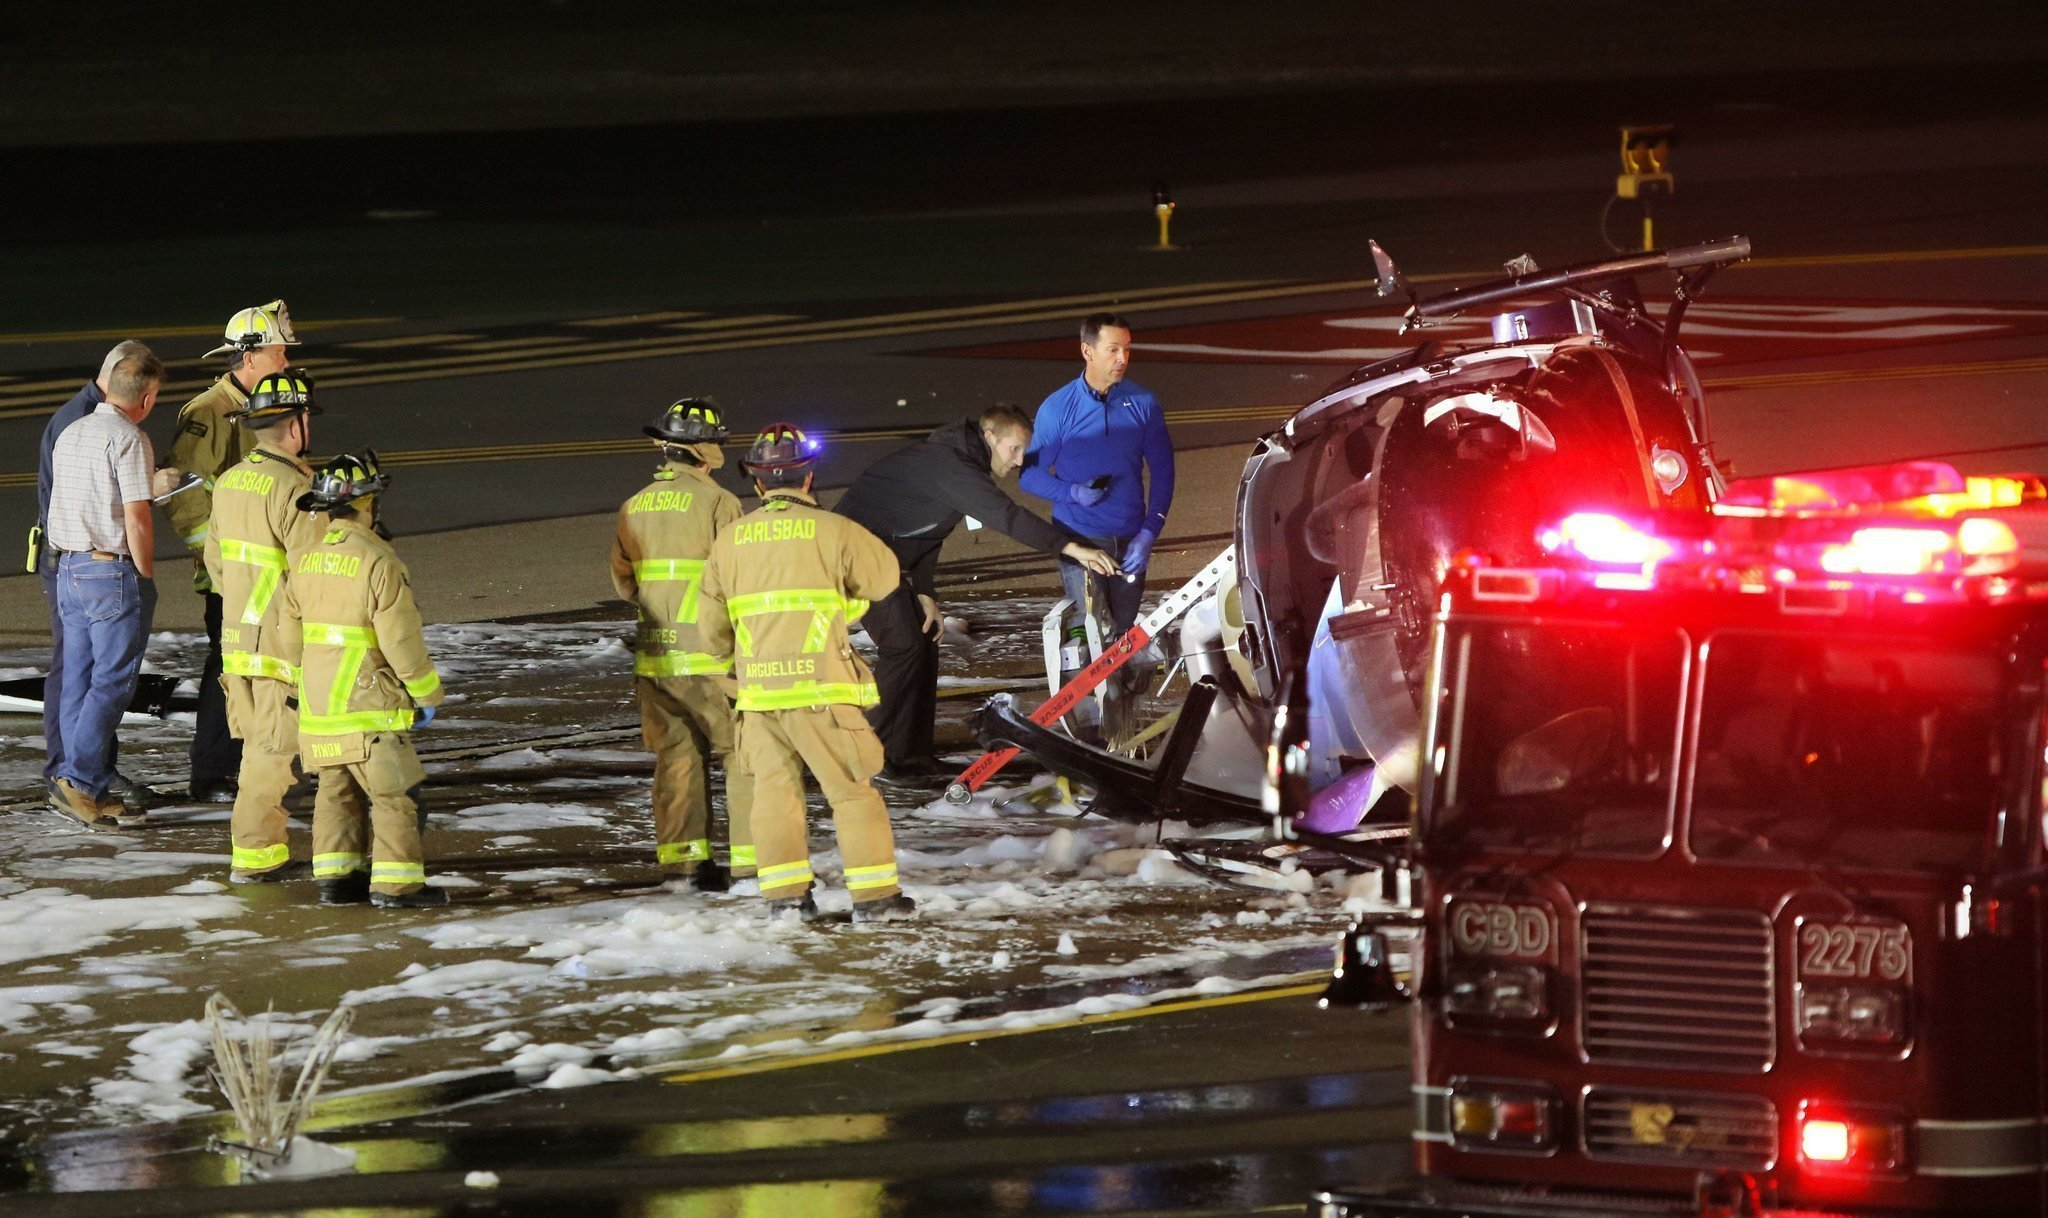 Ntsb Copter Missed Helipad 4 Times Before Fatal Crash The San